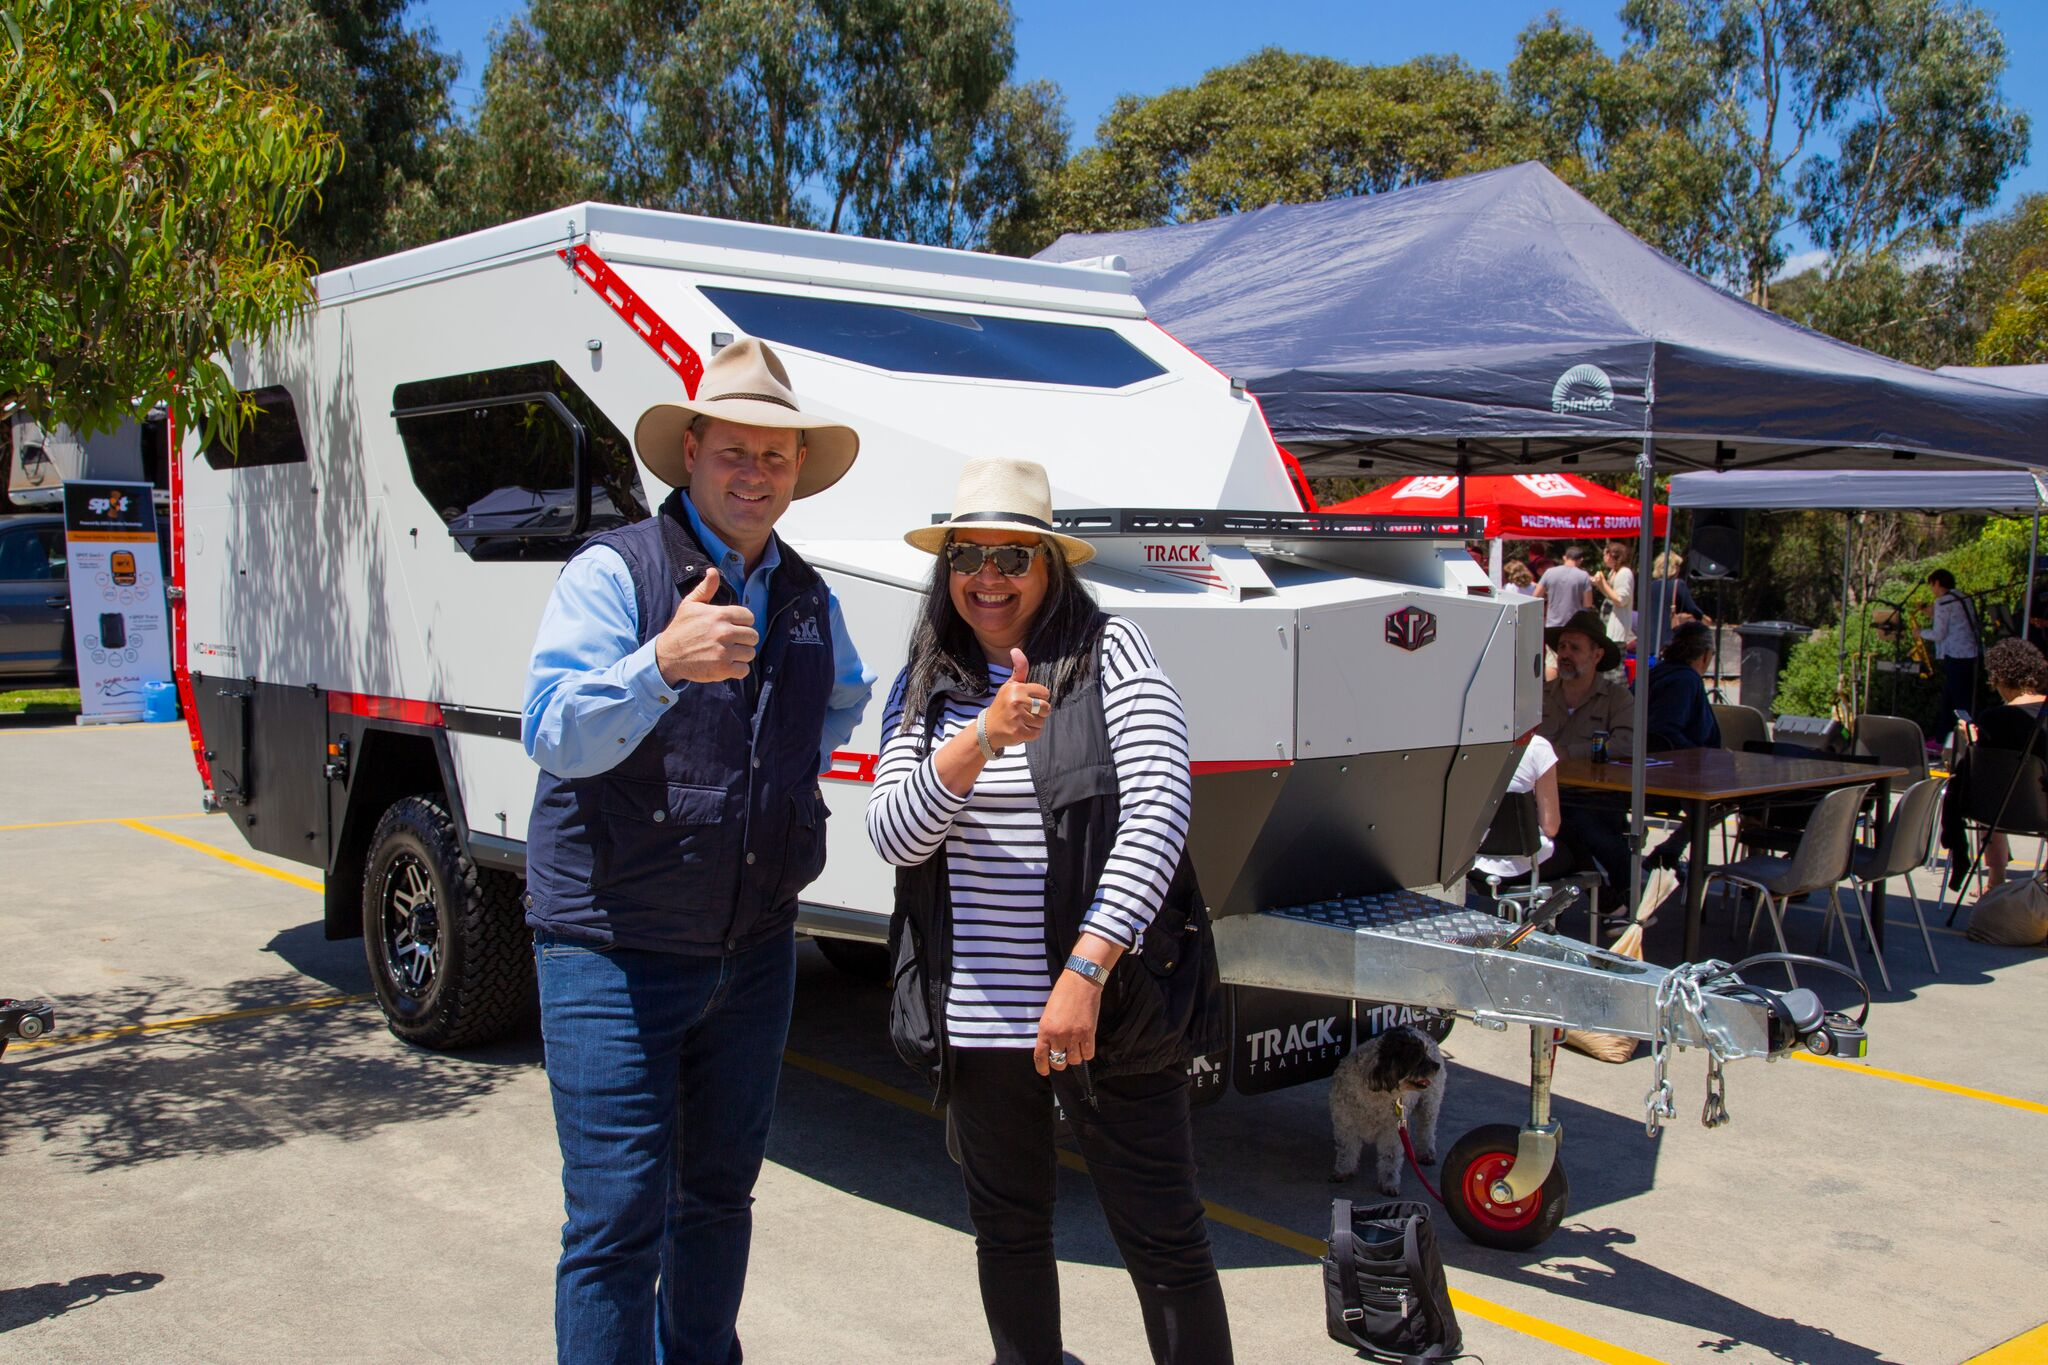 RV Daily Track Trailer $114k Giveaway winner announced!